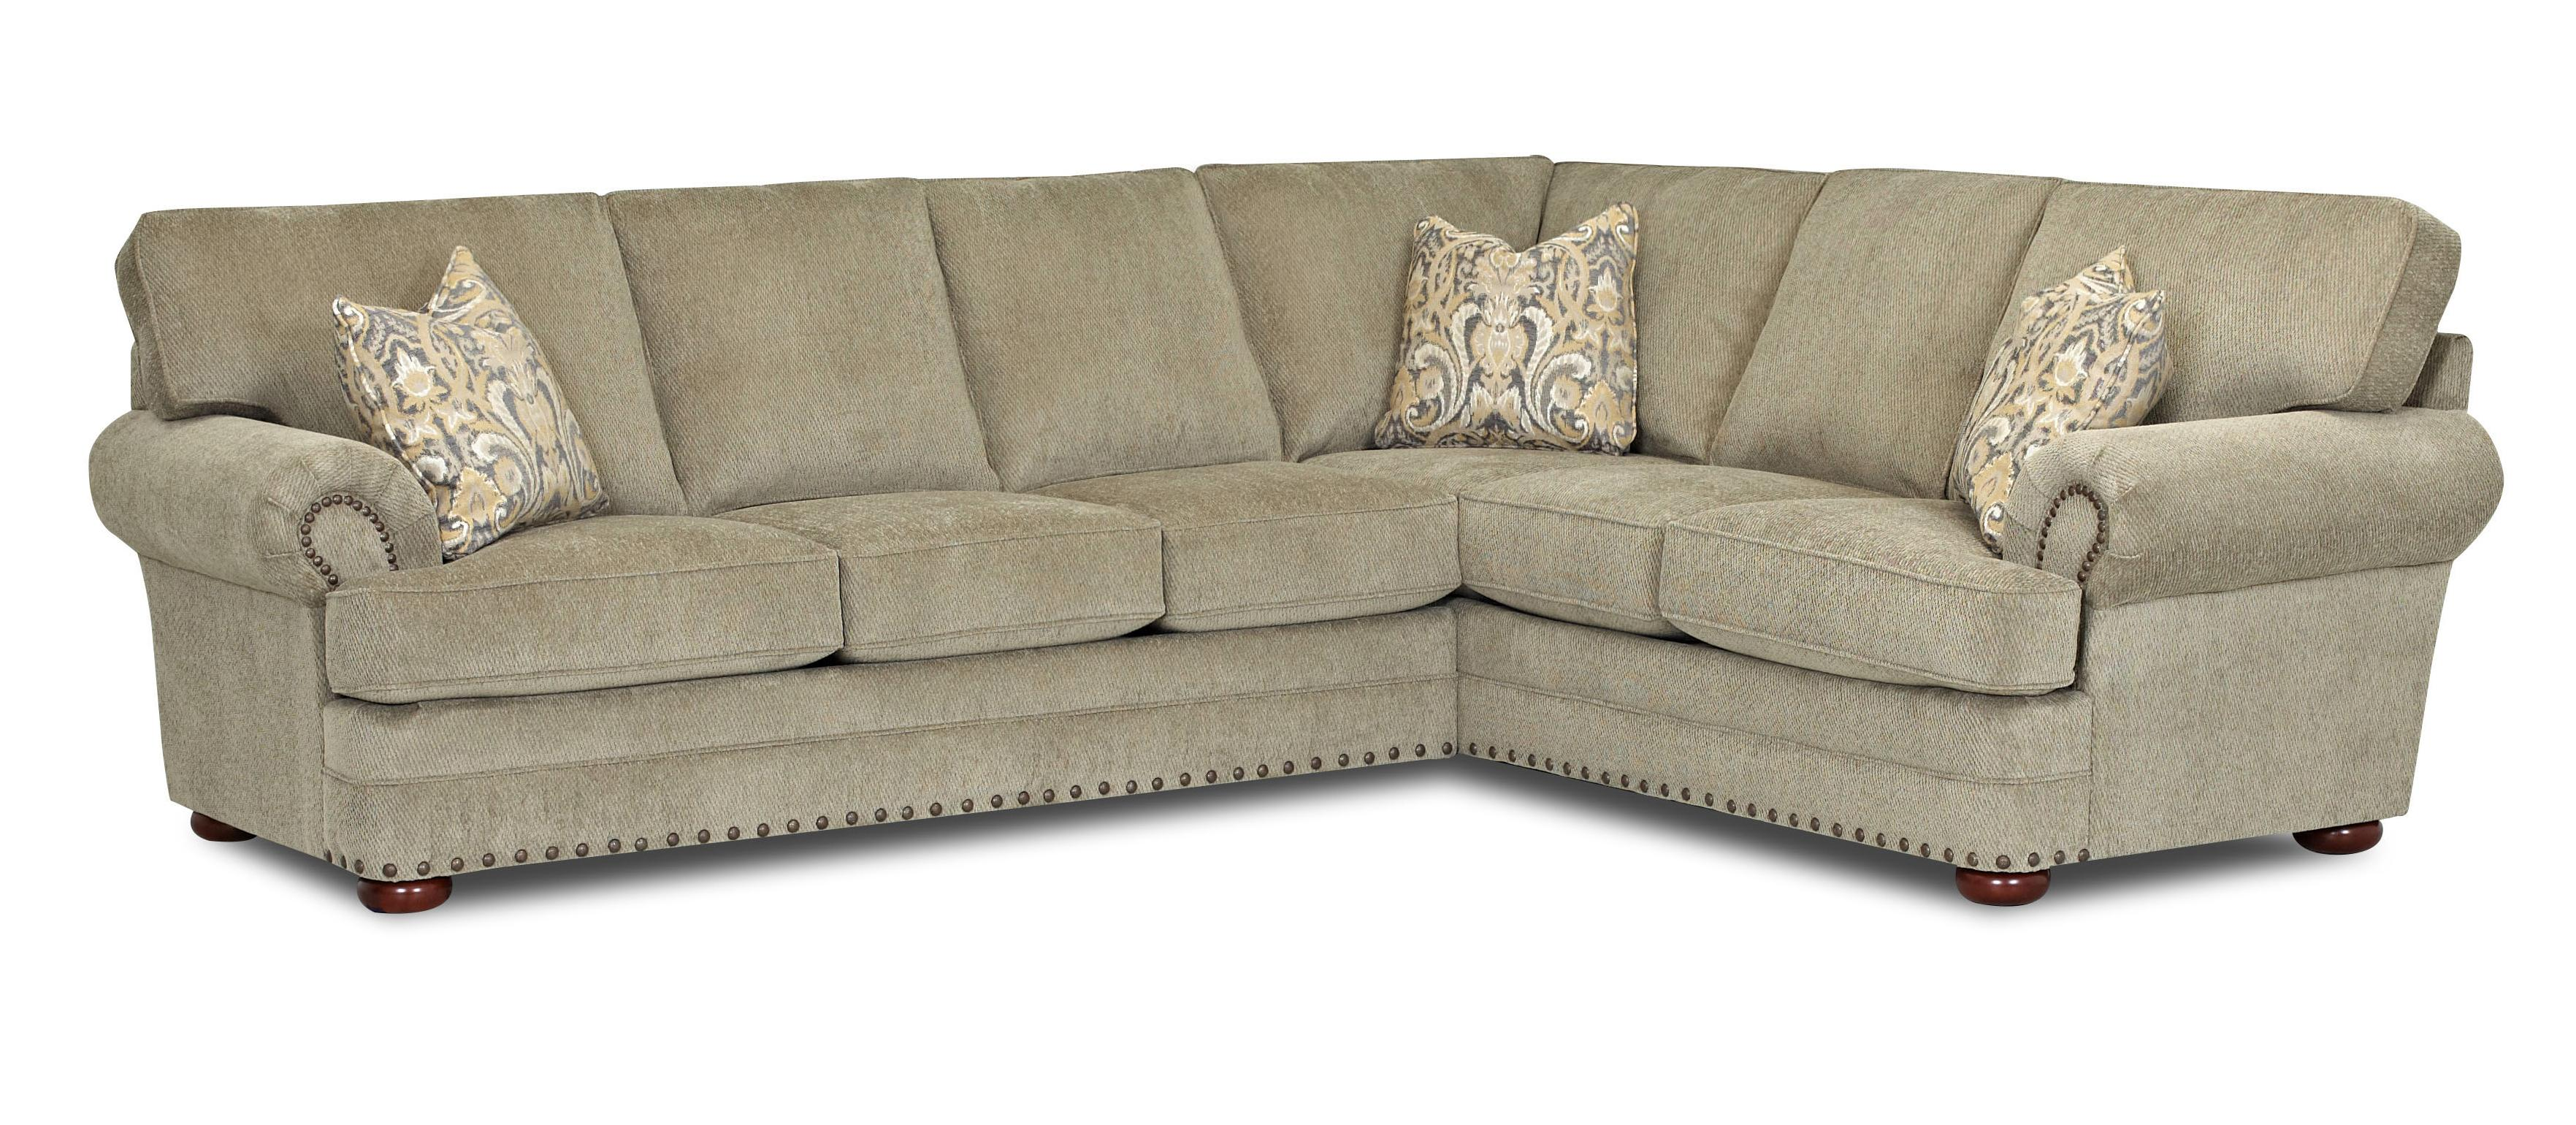 Traditional 2 Piece Sectional Sofa By Klaussner Wolf And Gardiner Wolf Furniture